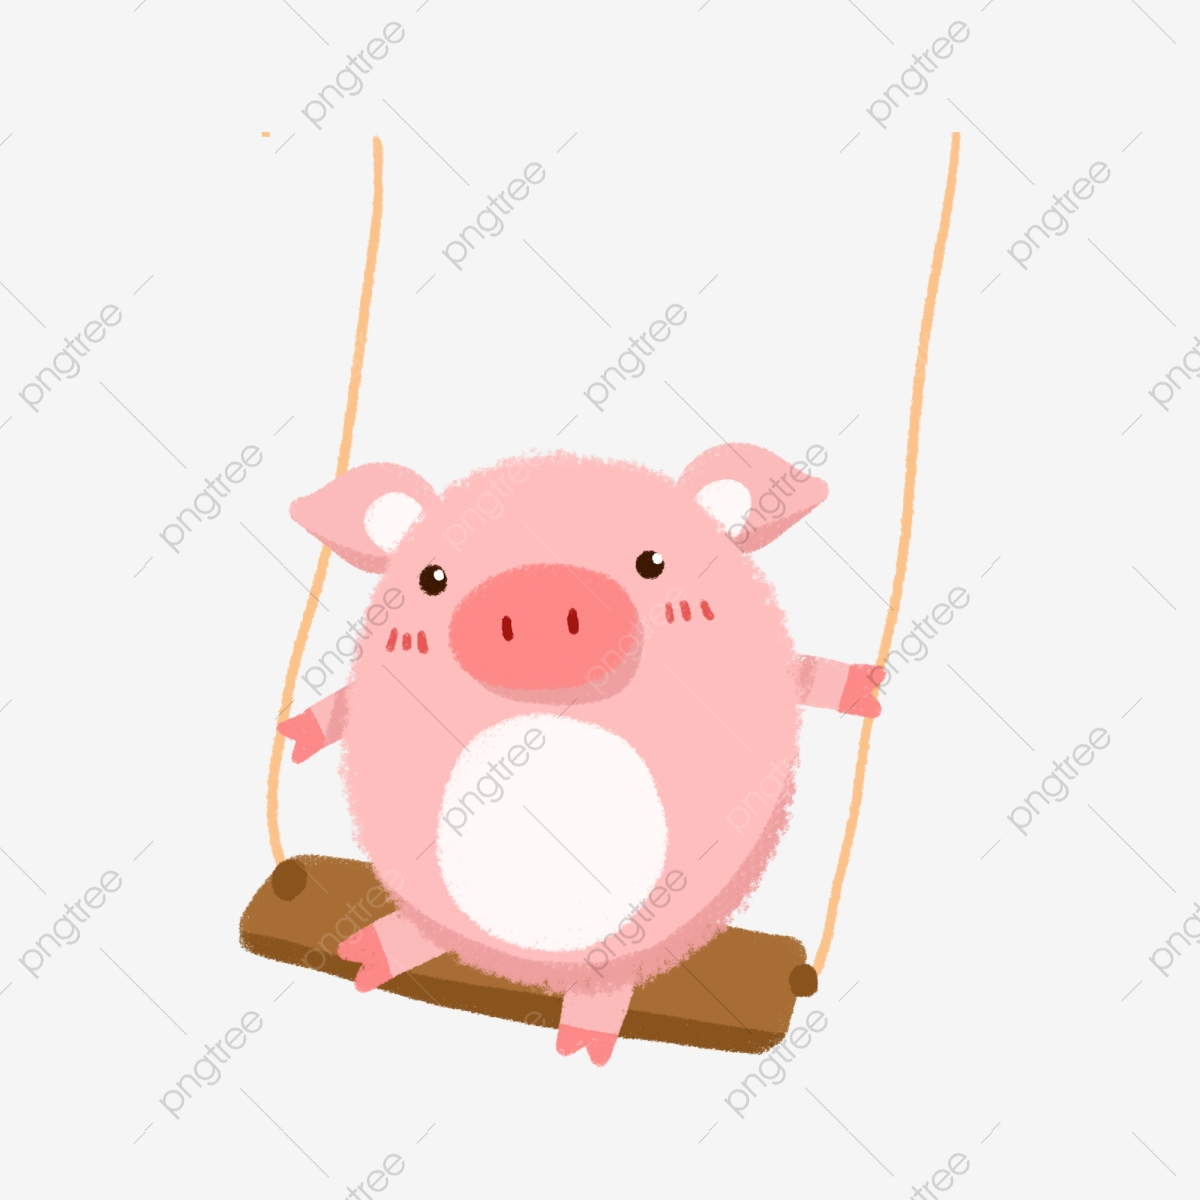 Dessin Animé Illustration Piggy Animal Porcinet Dessinés à